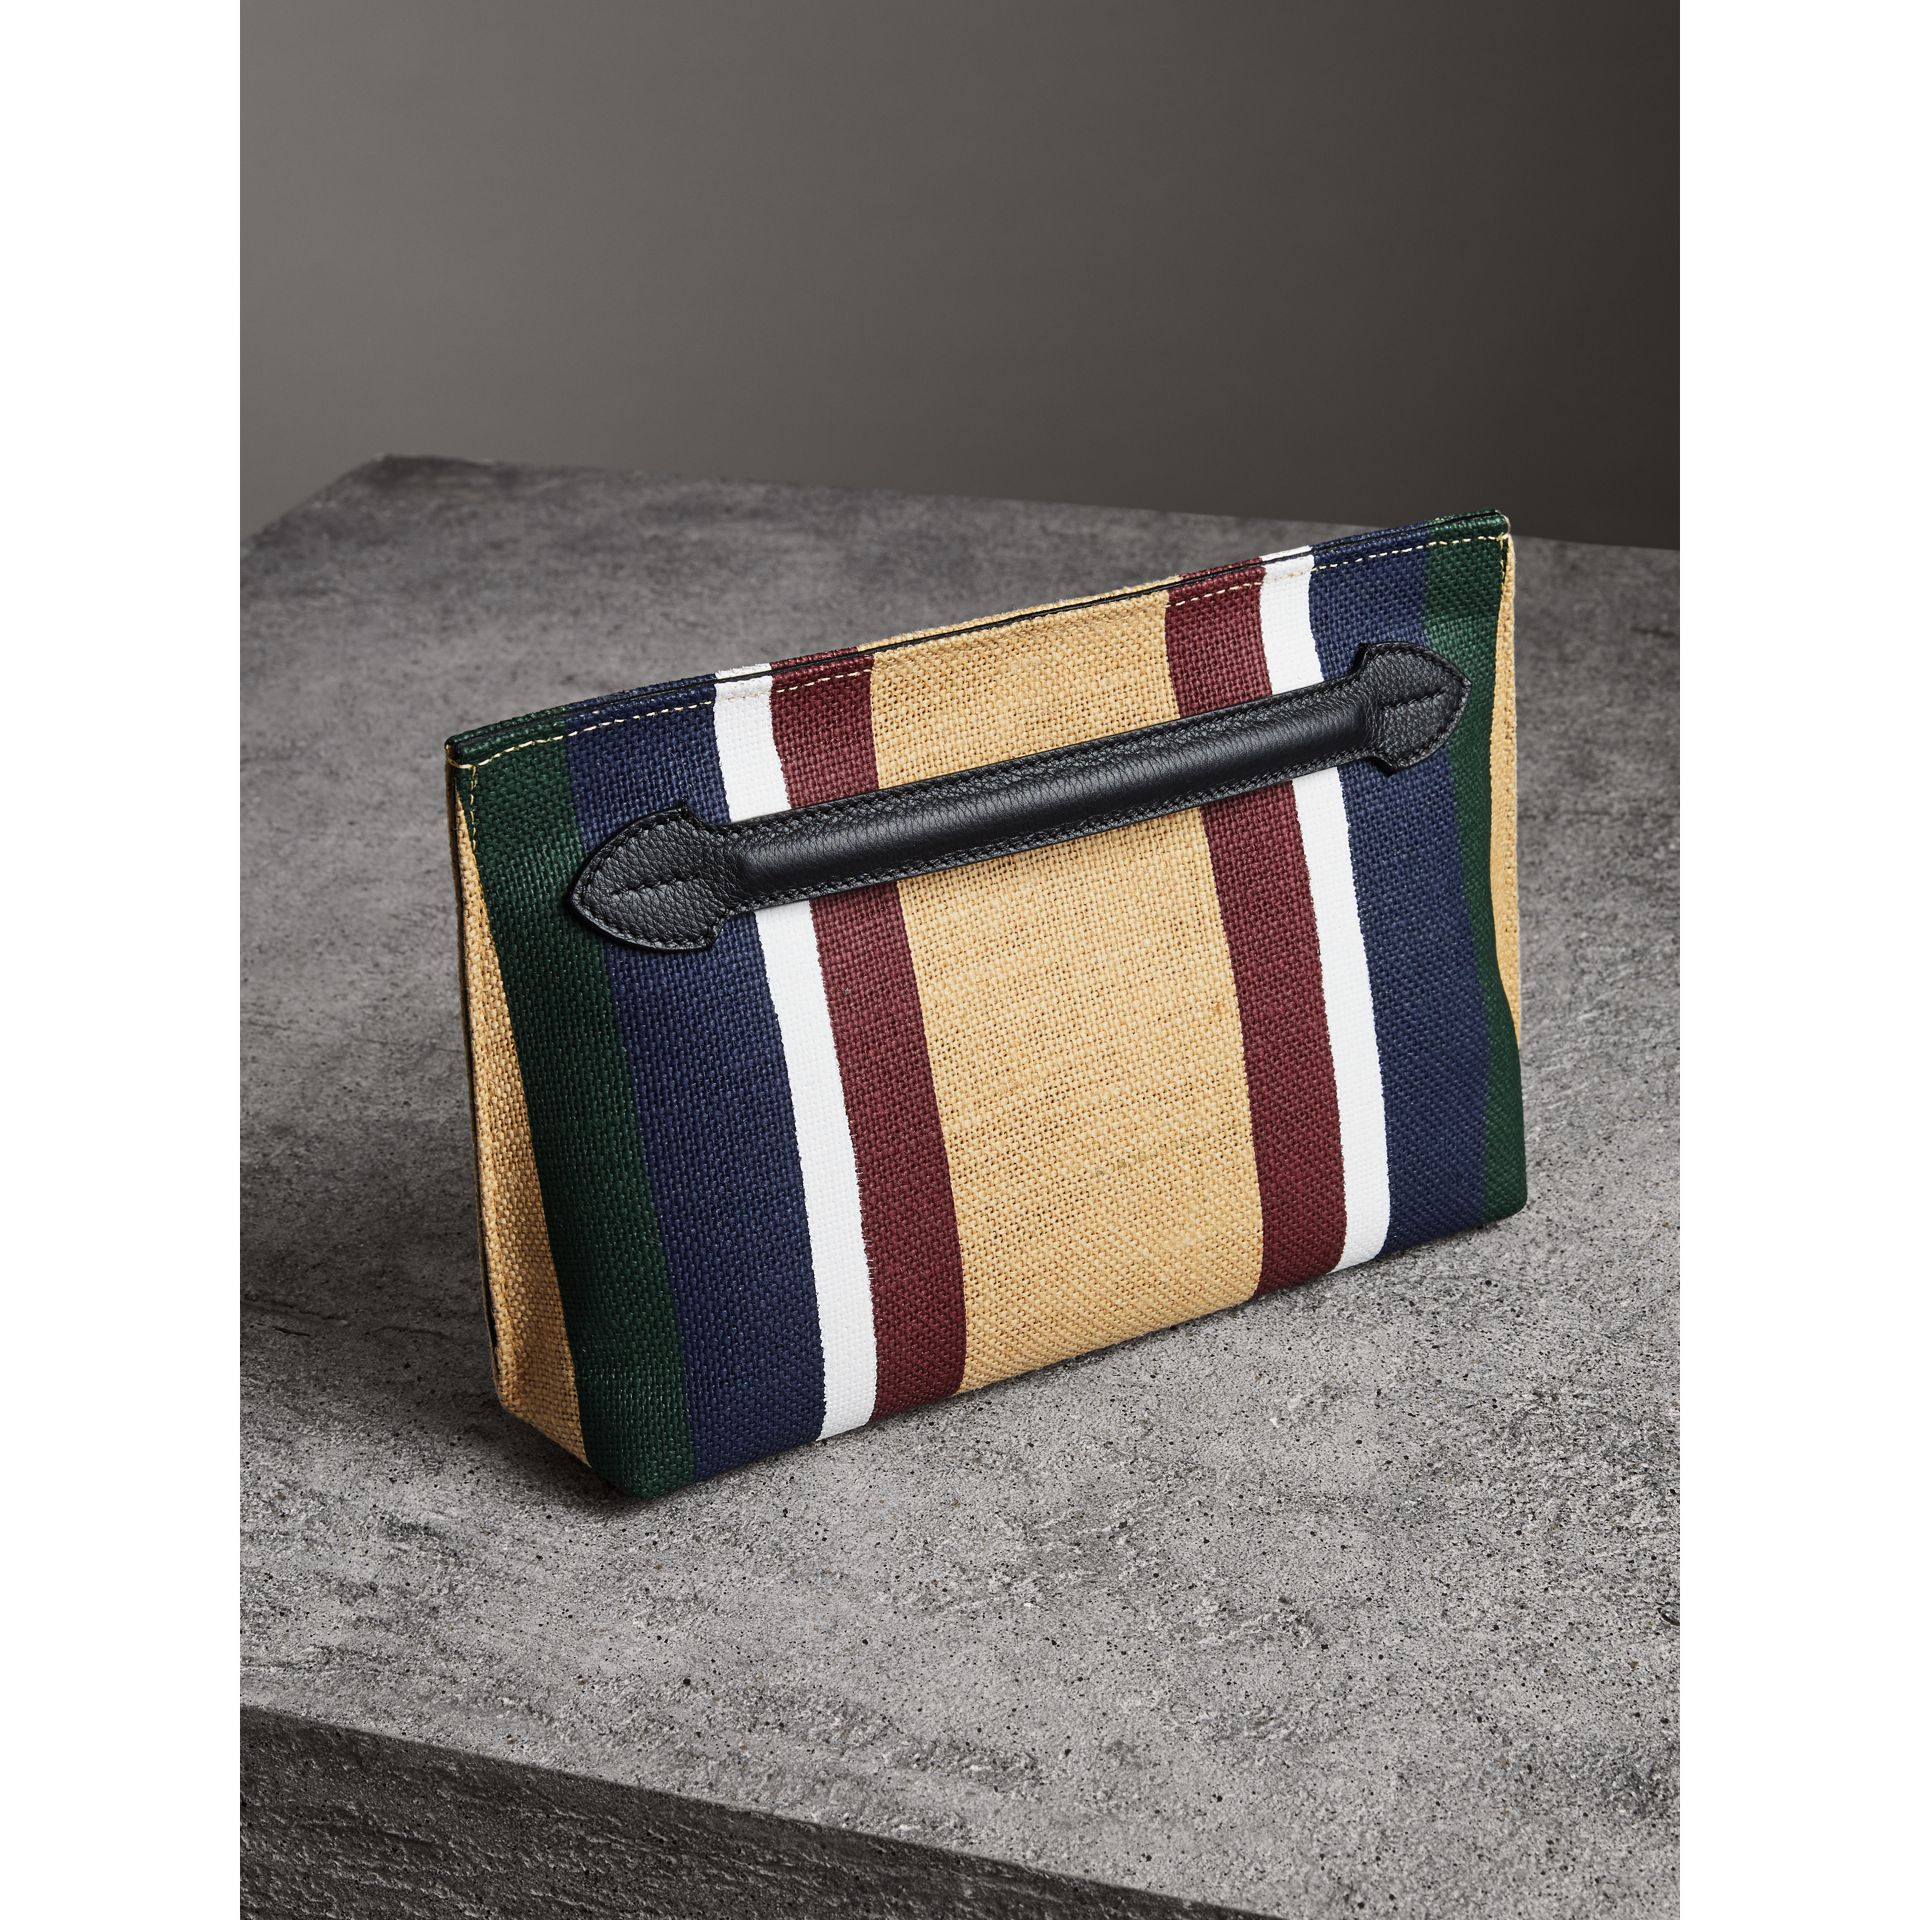 Striped Jute Wristlet Clutch in Black - Women | Burberry - gallery image 4